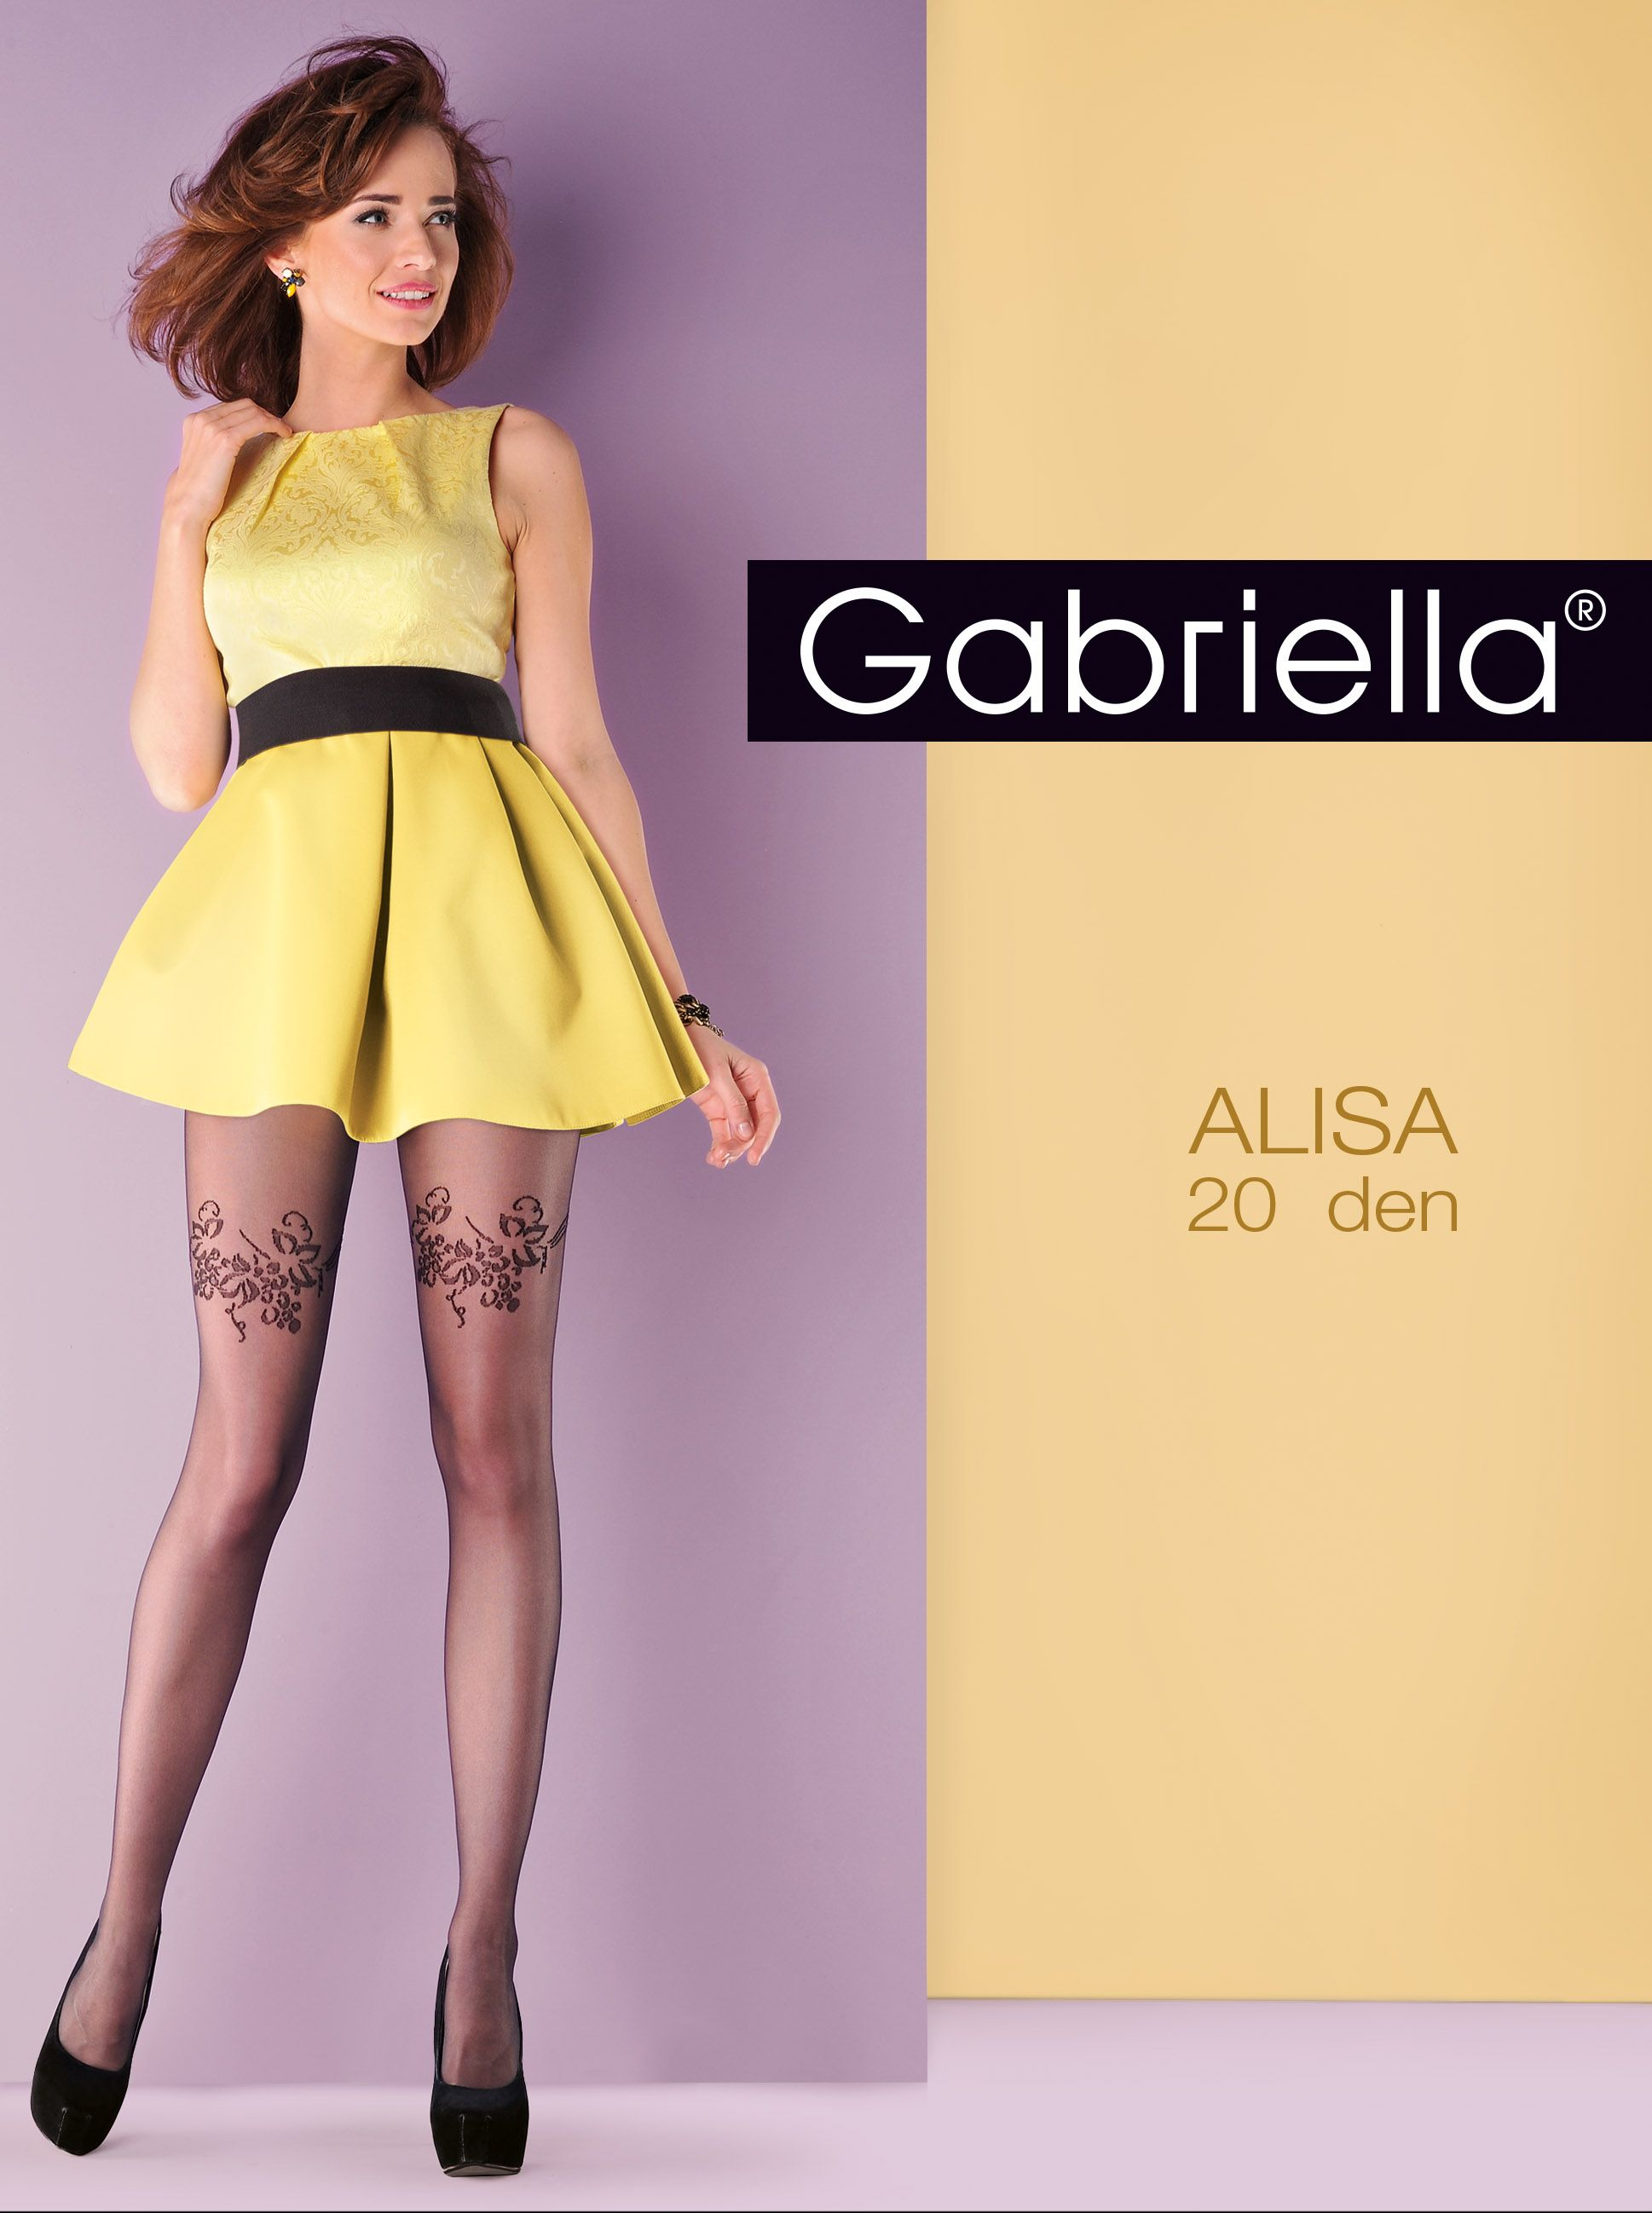 Pantyhose and alisa model